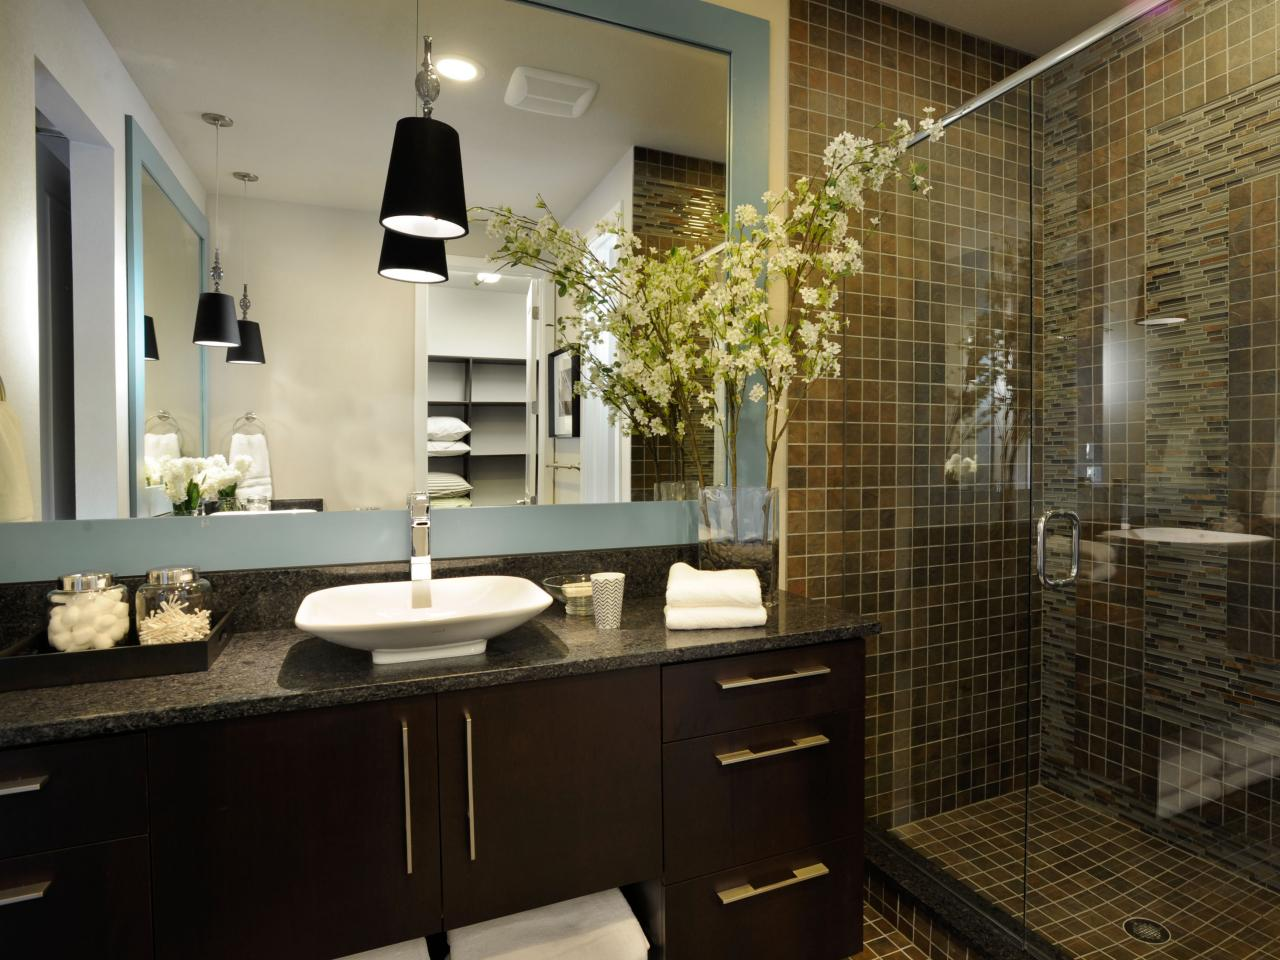 European Bathroom Design Ideas: HGTV Pictures & Tips